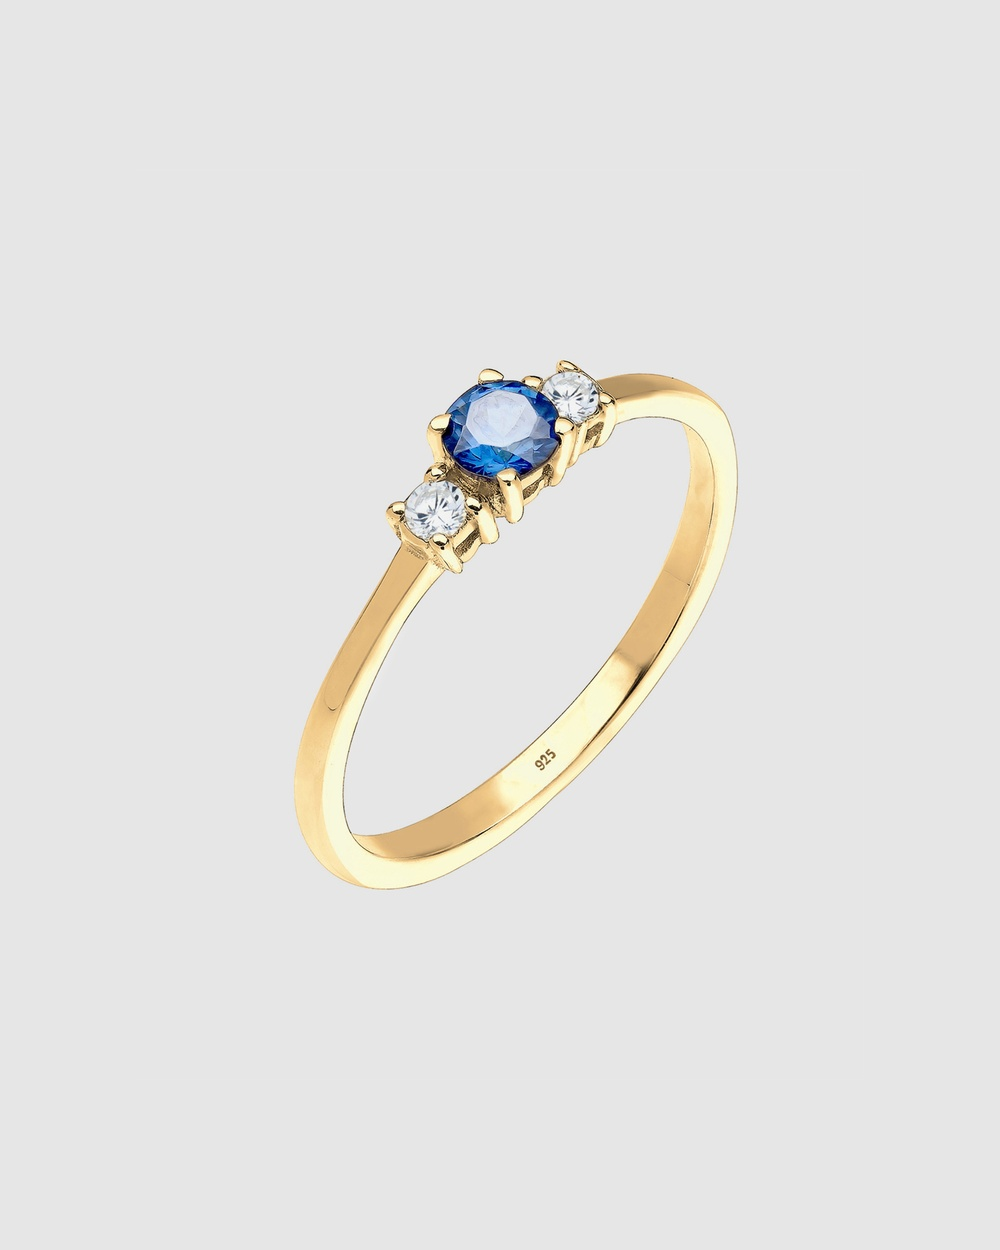 Elli Jewelry Ring Engagement Synthetic Saphire with Zirconia Crystals in 925 Sterling Silver Gold Plated Jewellery multi